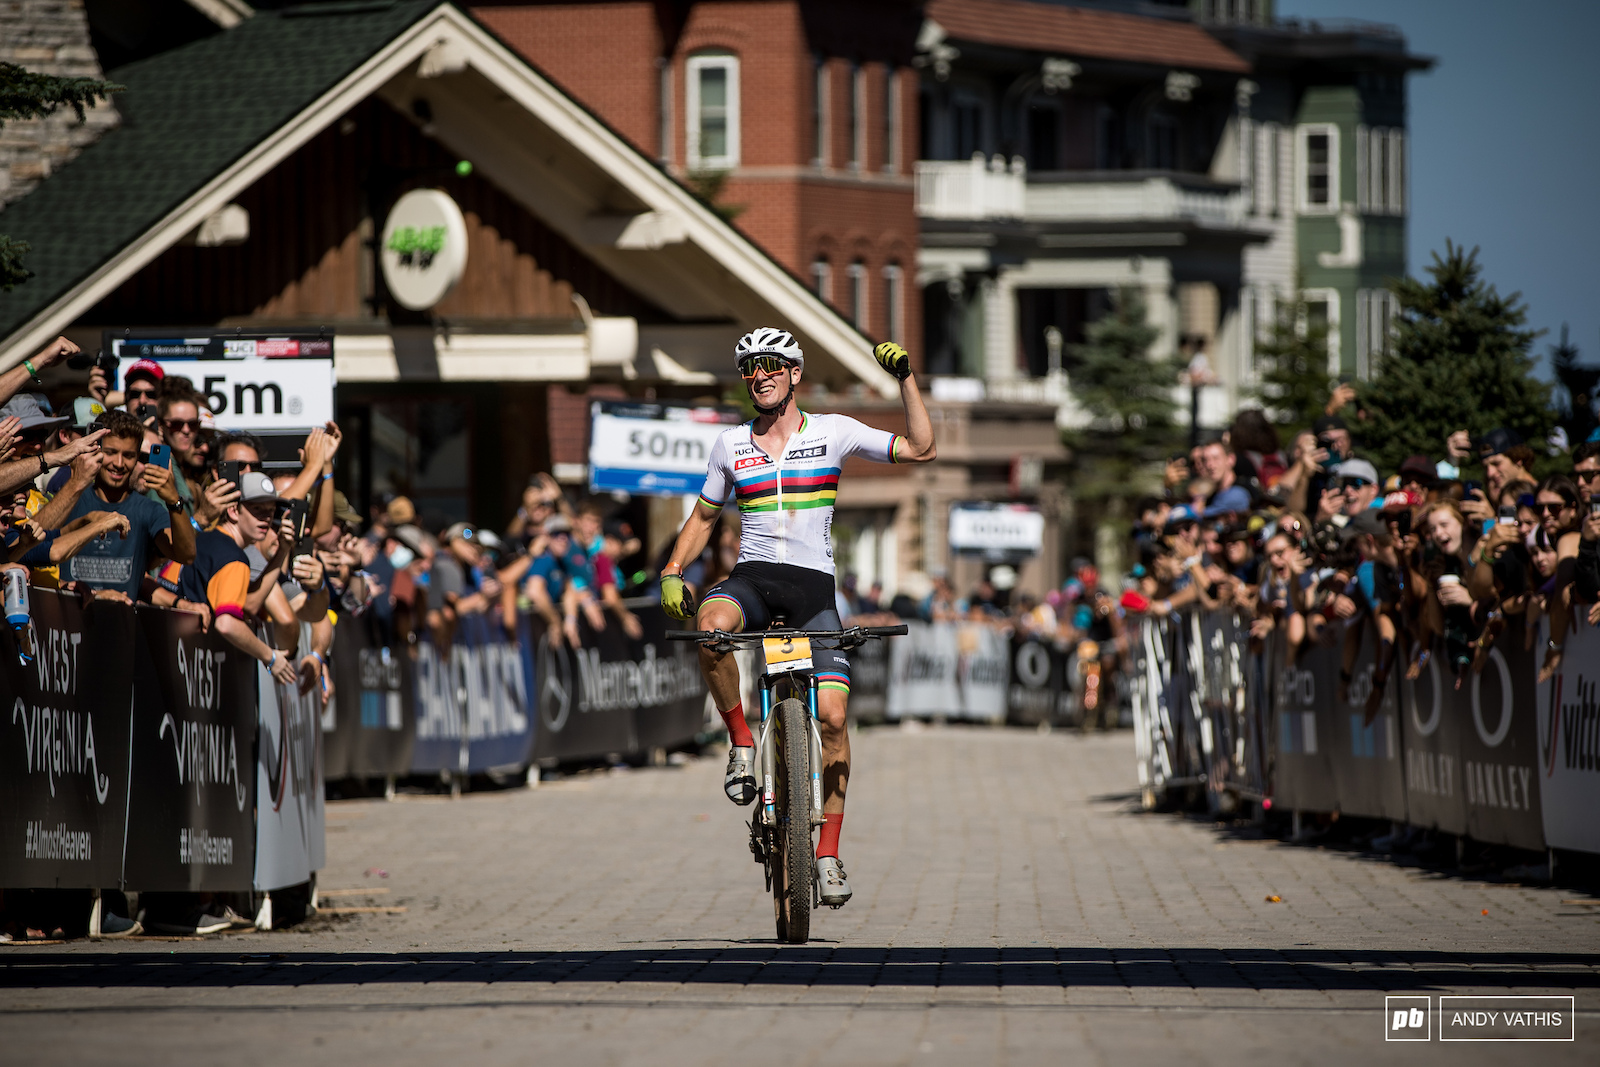 Martin Vidaurre Kossmann takes the win and the overall here in Snowshoe.